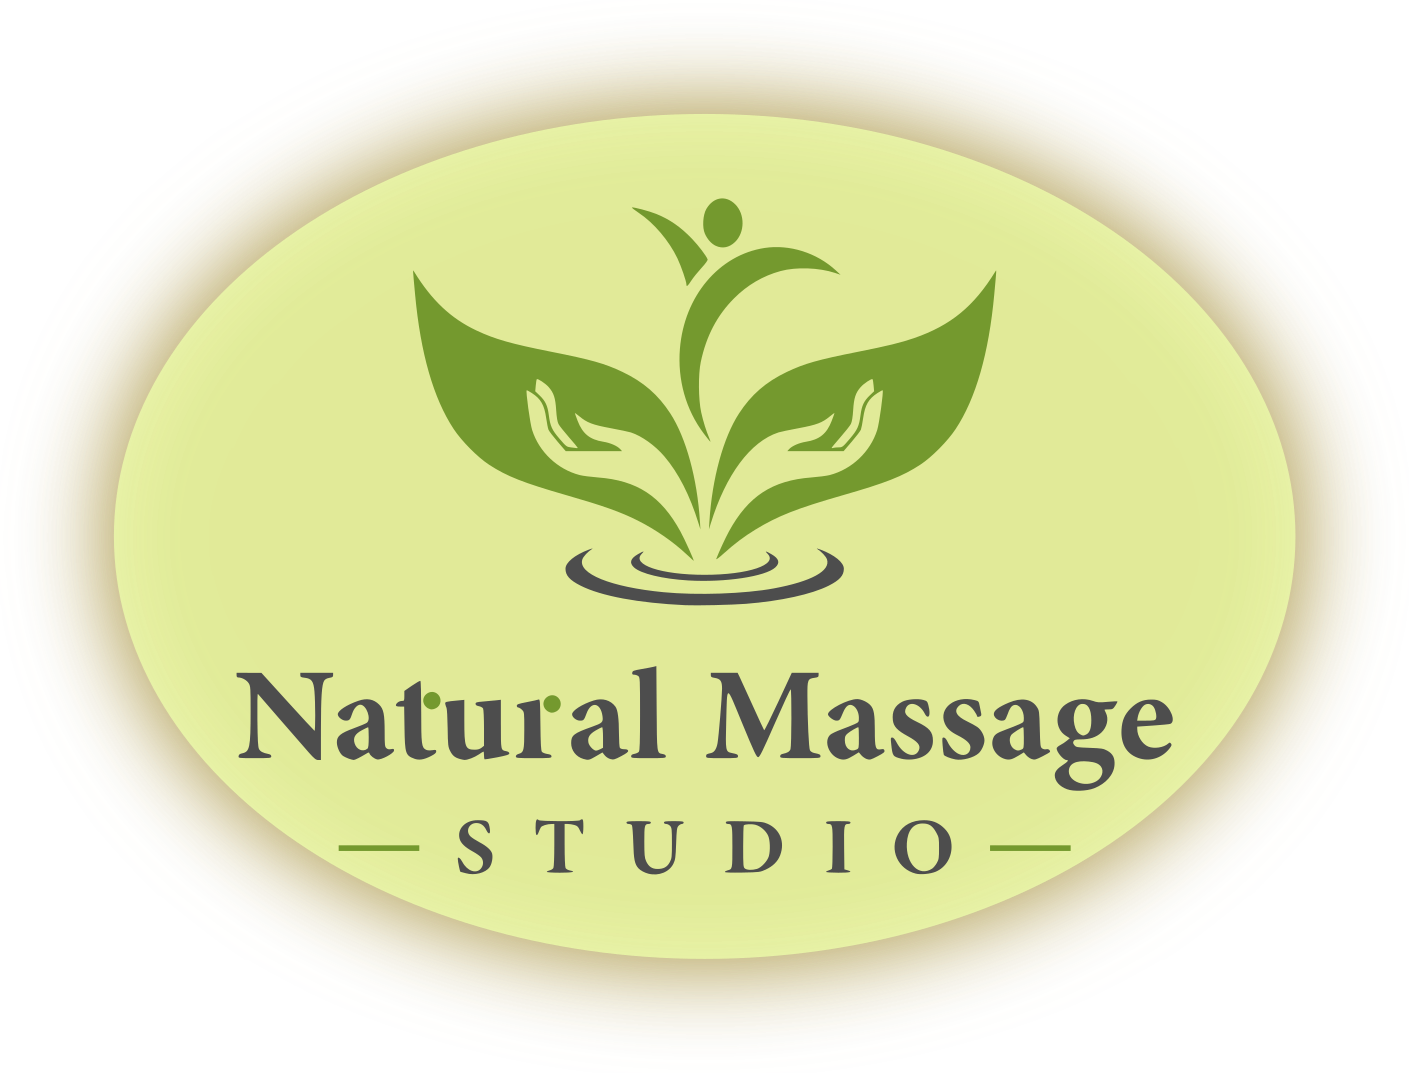 Natural massage Studio in Edmonton